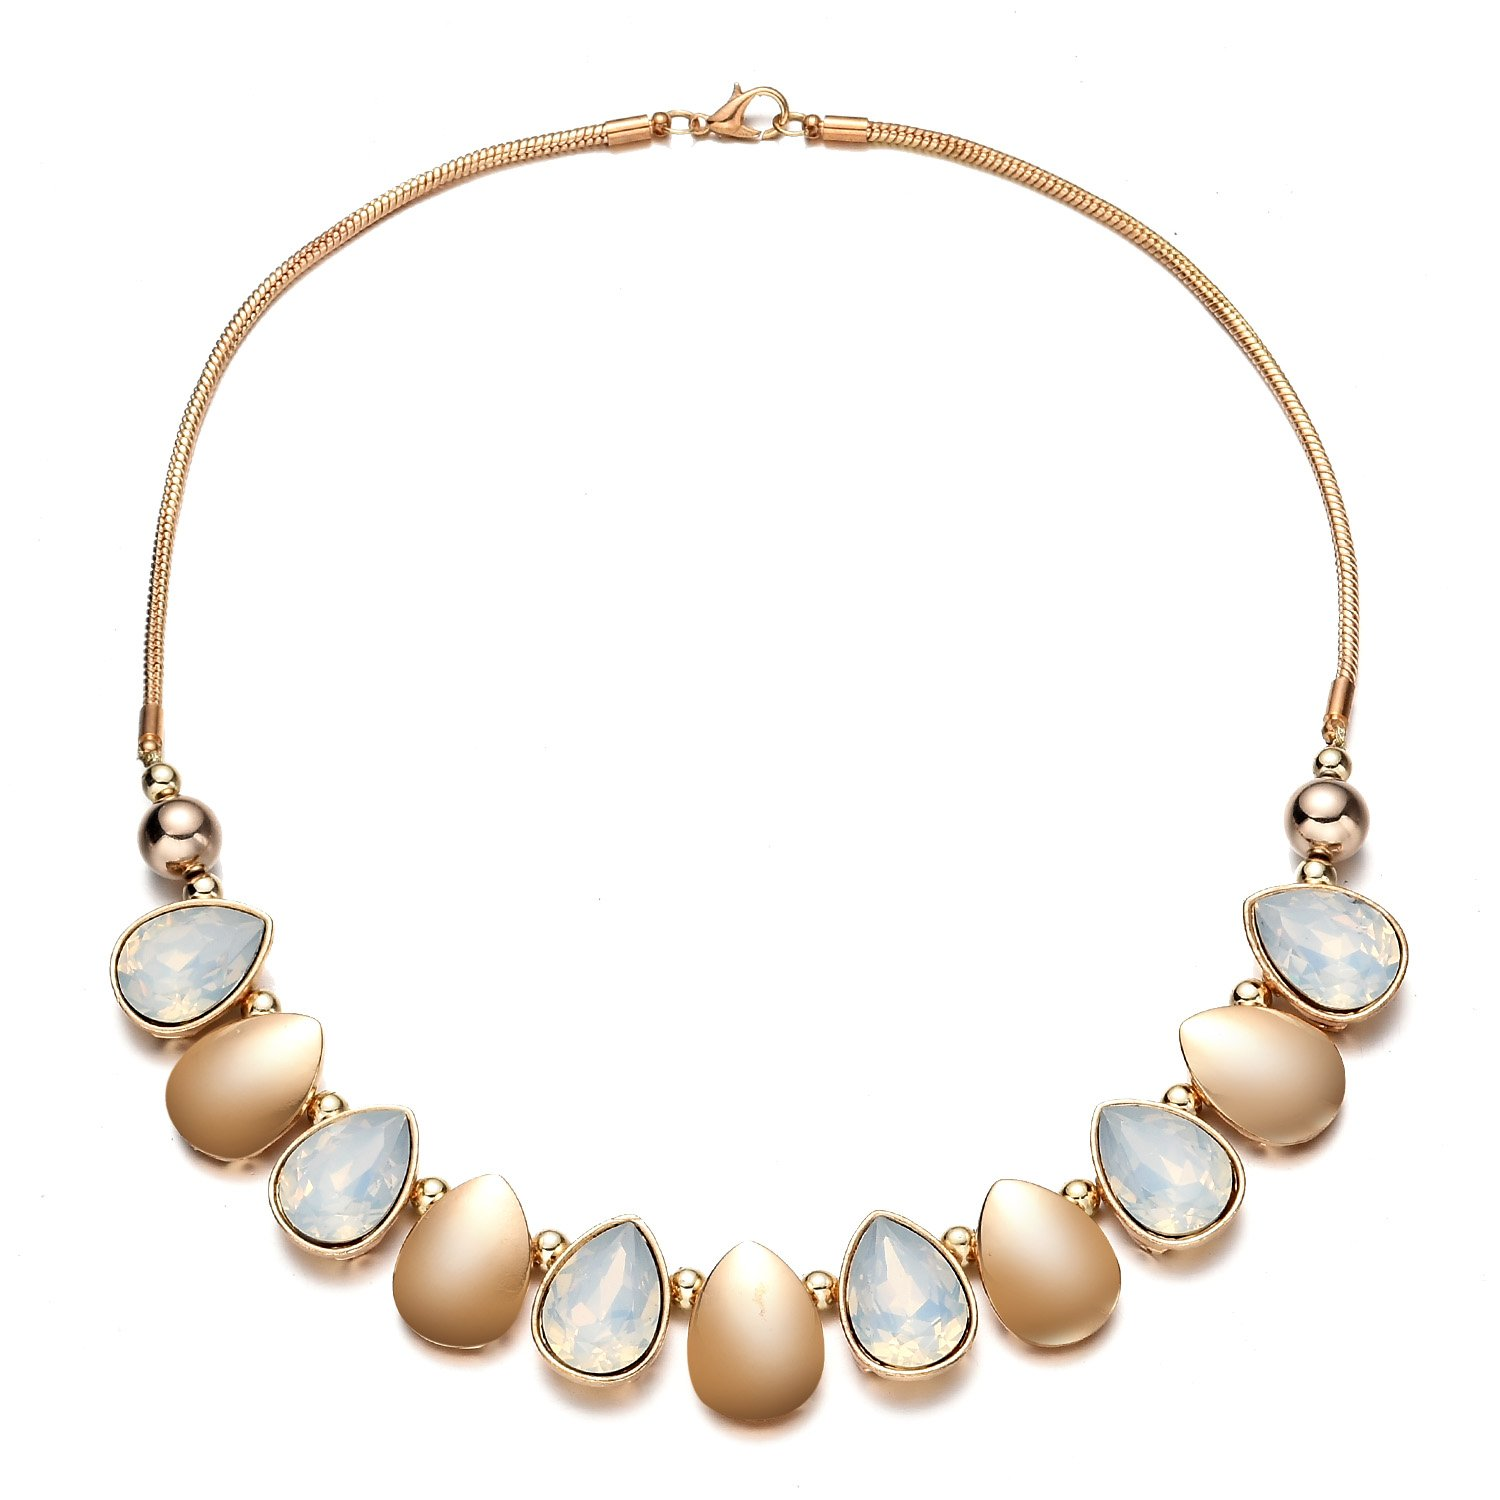 Oaonnea Women Gold Chains Choker Necklace Water Drop Pendant Statement Collar Necklaces (waterdrop necklace)